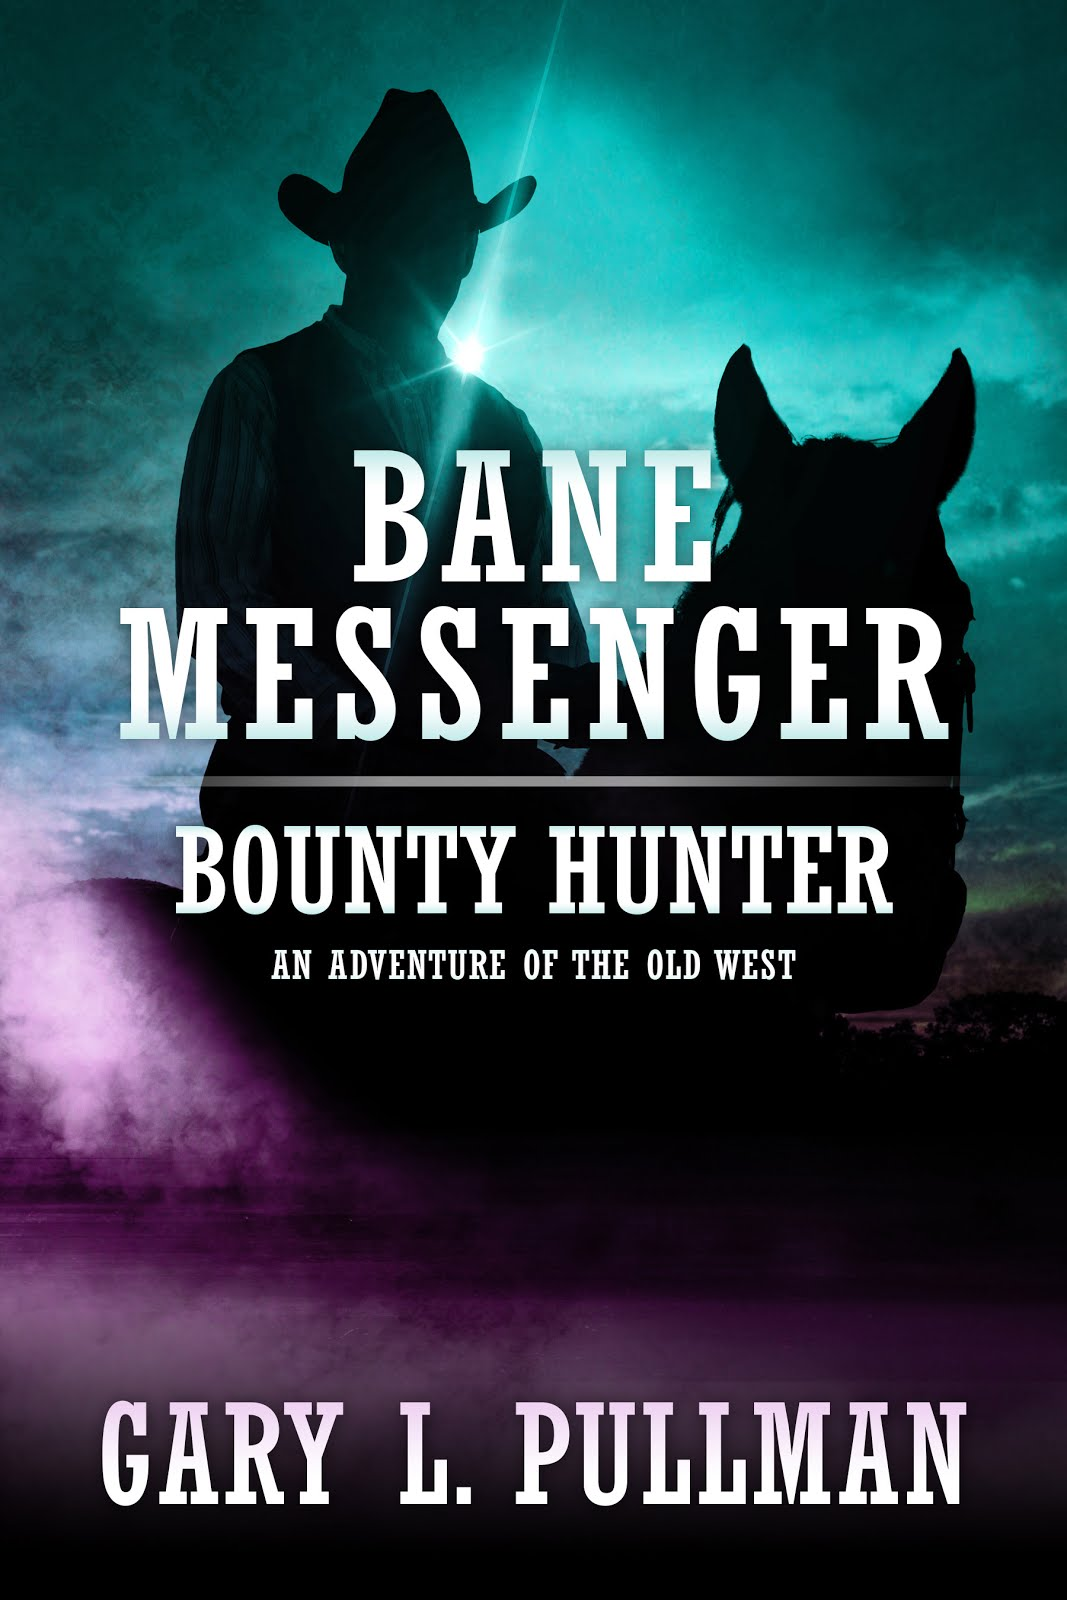 Bane Messenger, Bounty Hunter